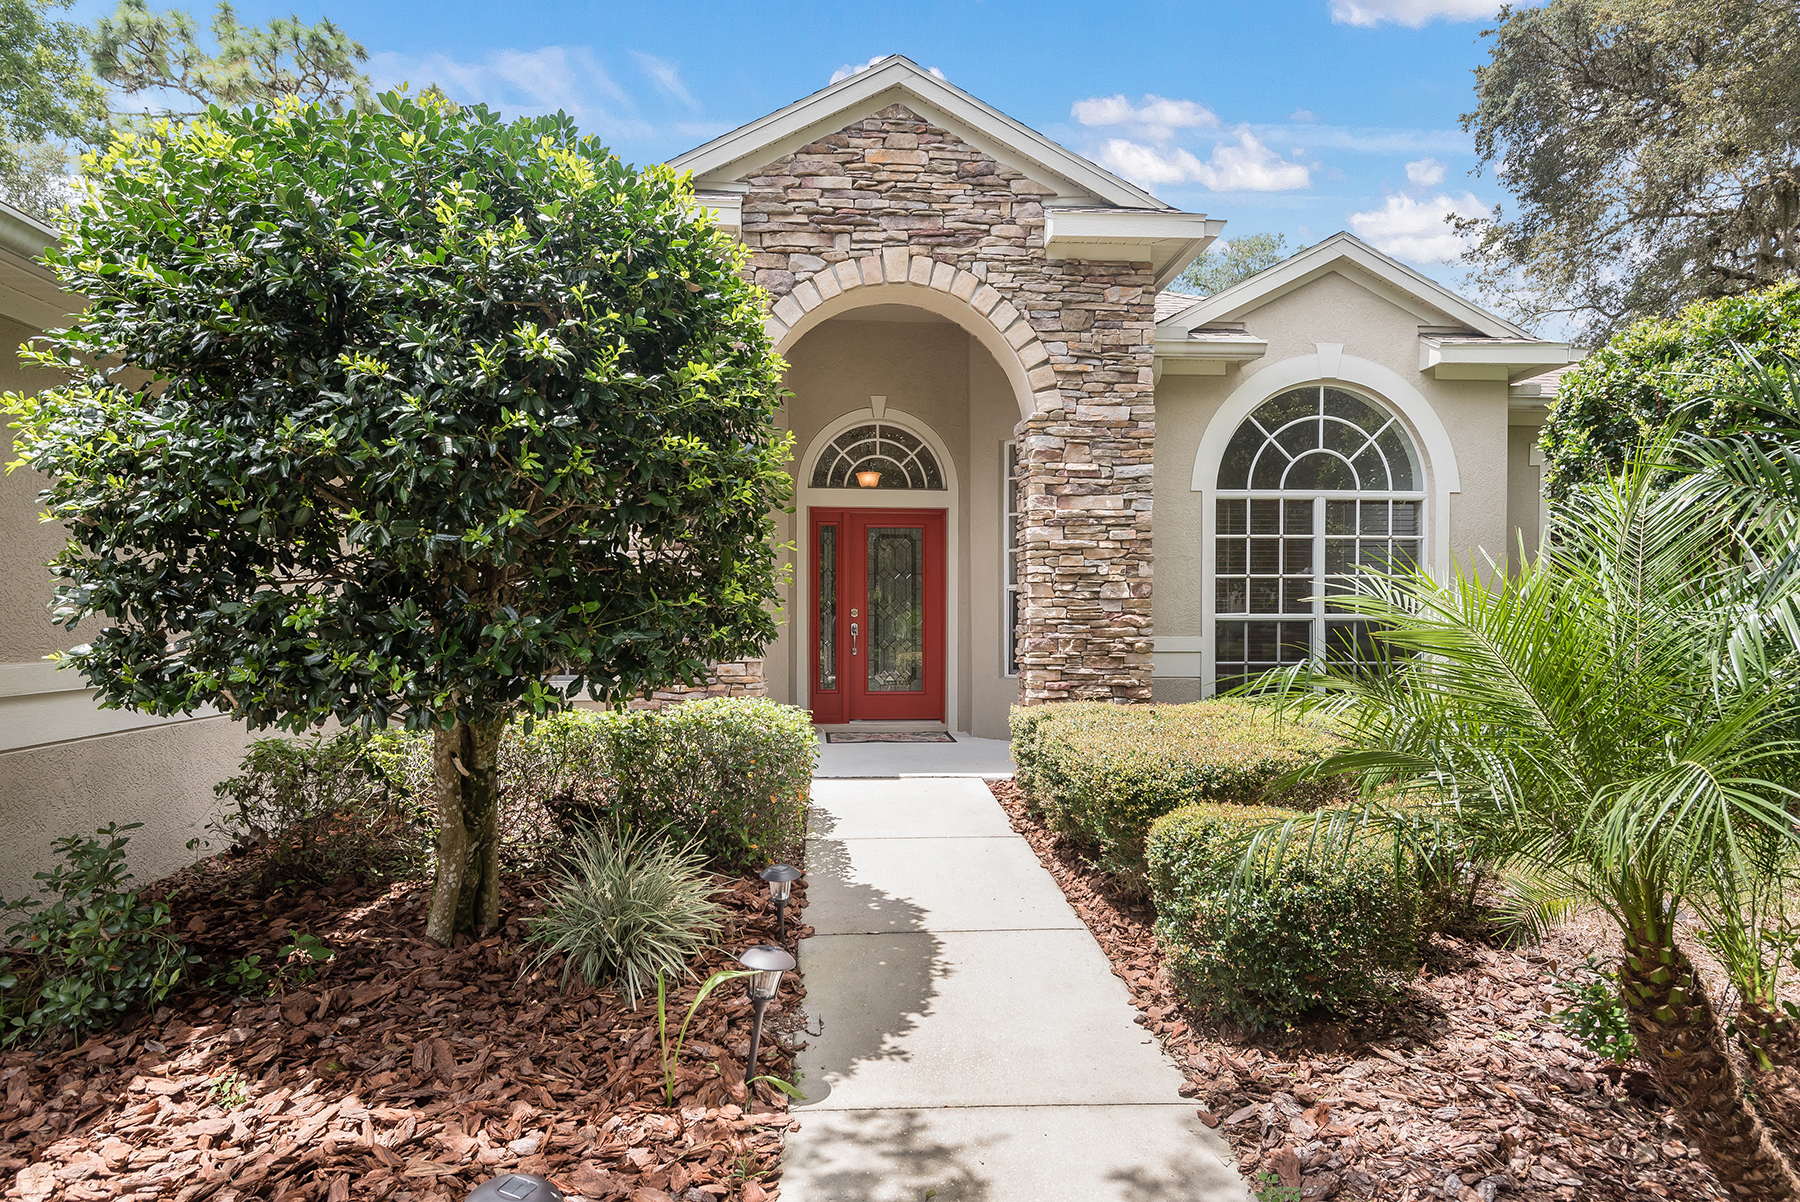 Single Family Home for Sale at FISHHAWK RANCH 15935 Sorawater Dr Lithia, Florida, 33547 United States